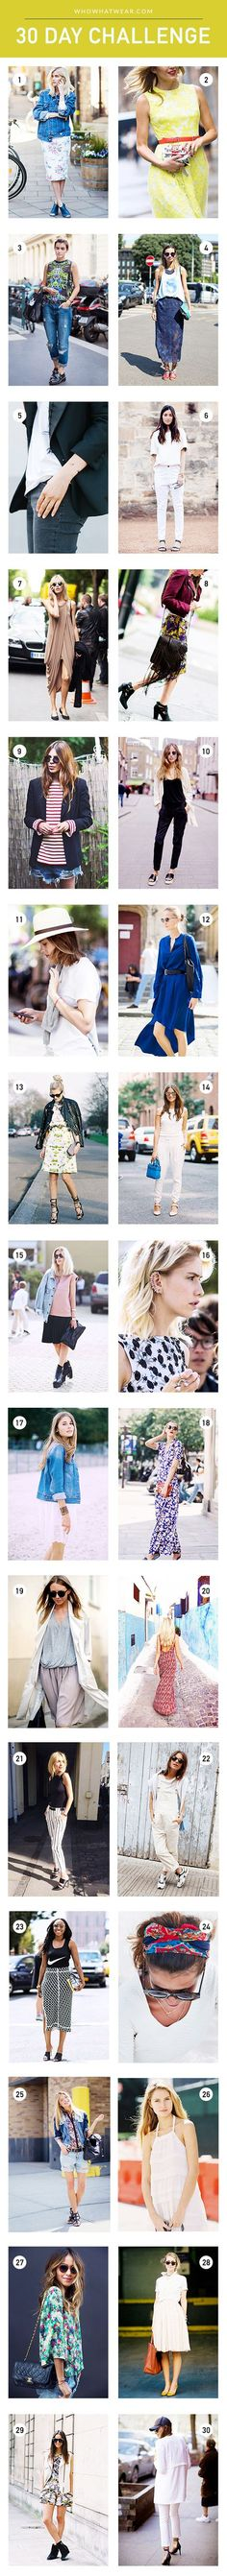 30 different outfit ideas to try over 30 days this summer, via @WhoWhatWear #WWWSummer30 // #StreetStyle #Outfits #OOTD #LOTD